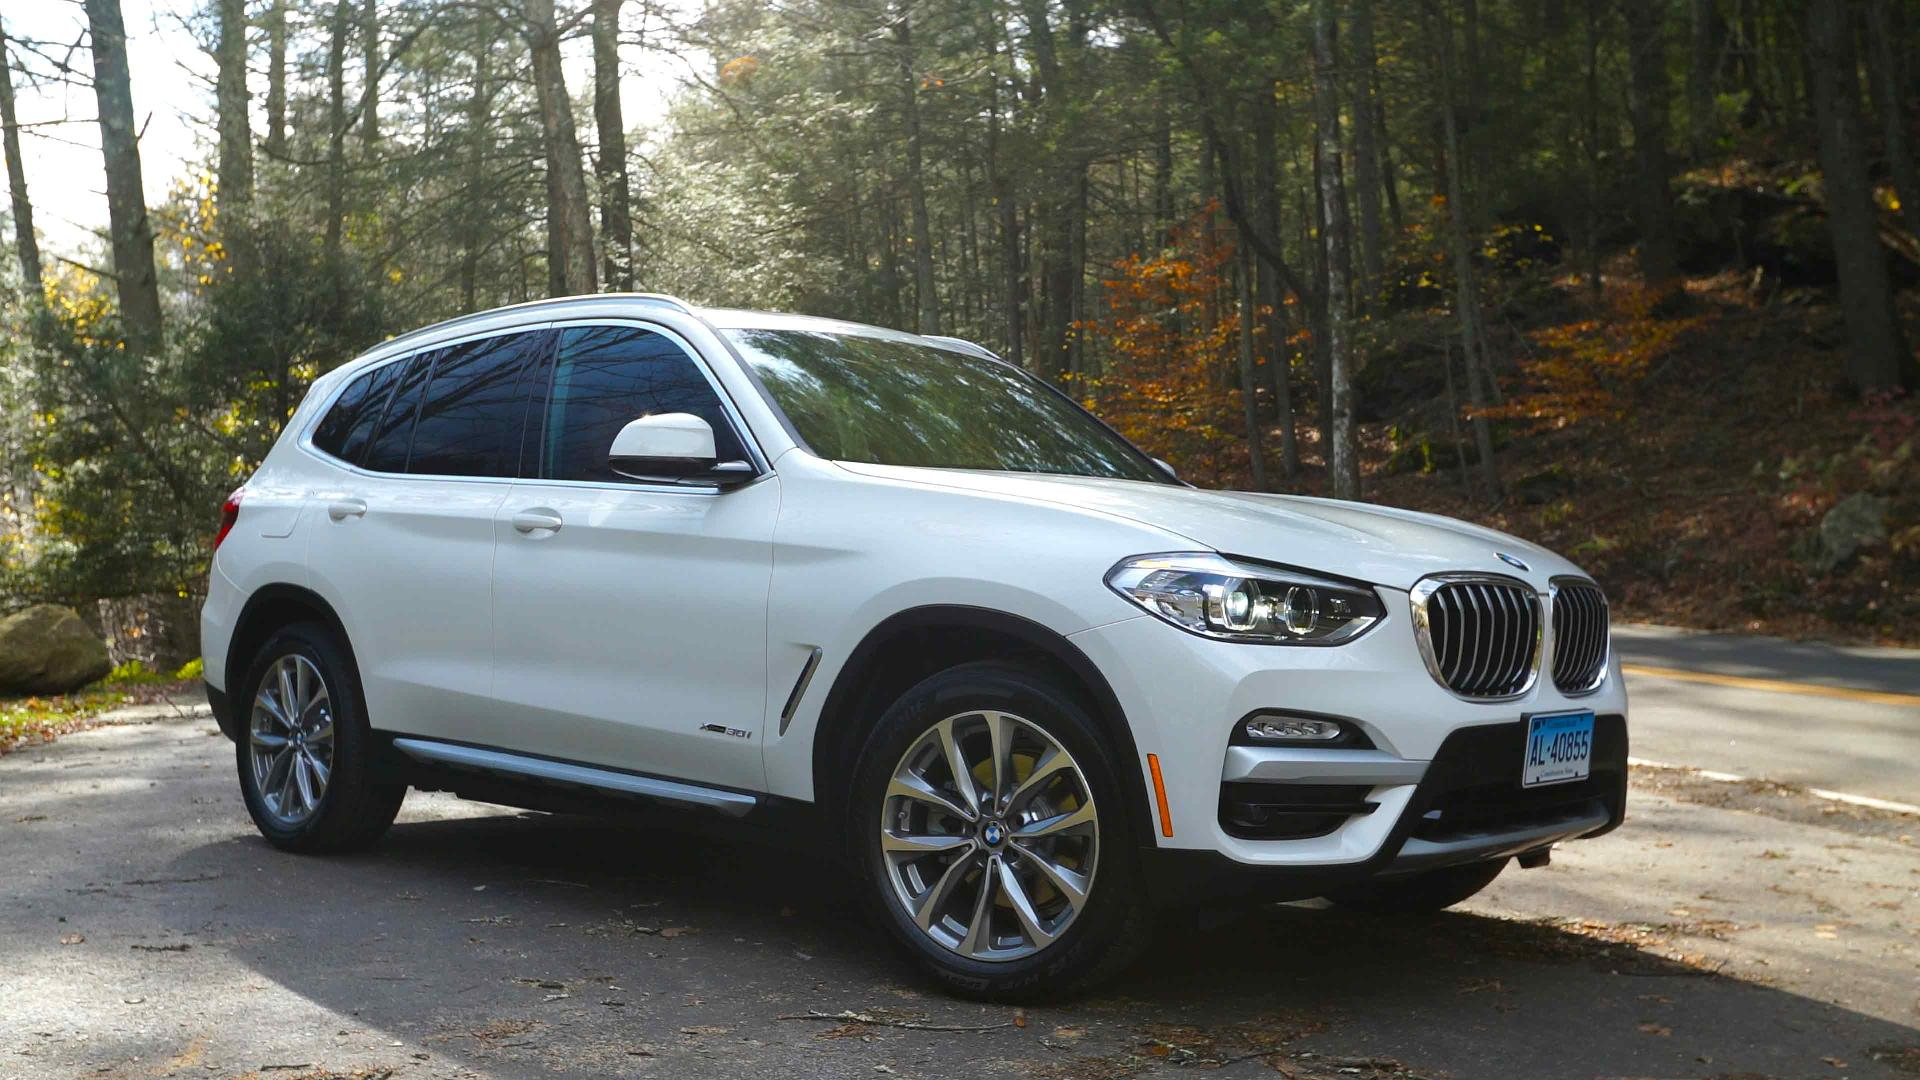 2018 Bmw X3 May Be Among The Best Luxury Compact Suvs Consumer Reports